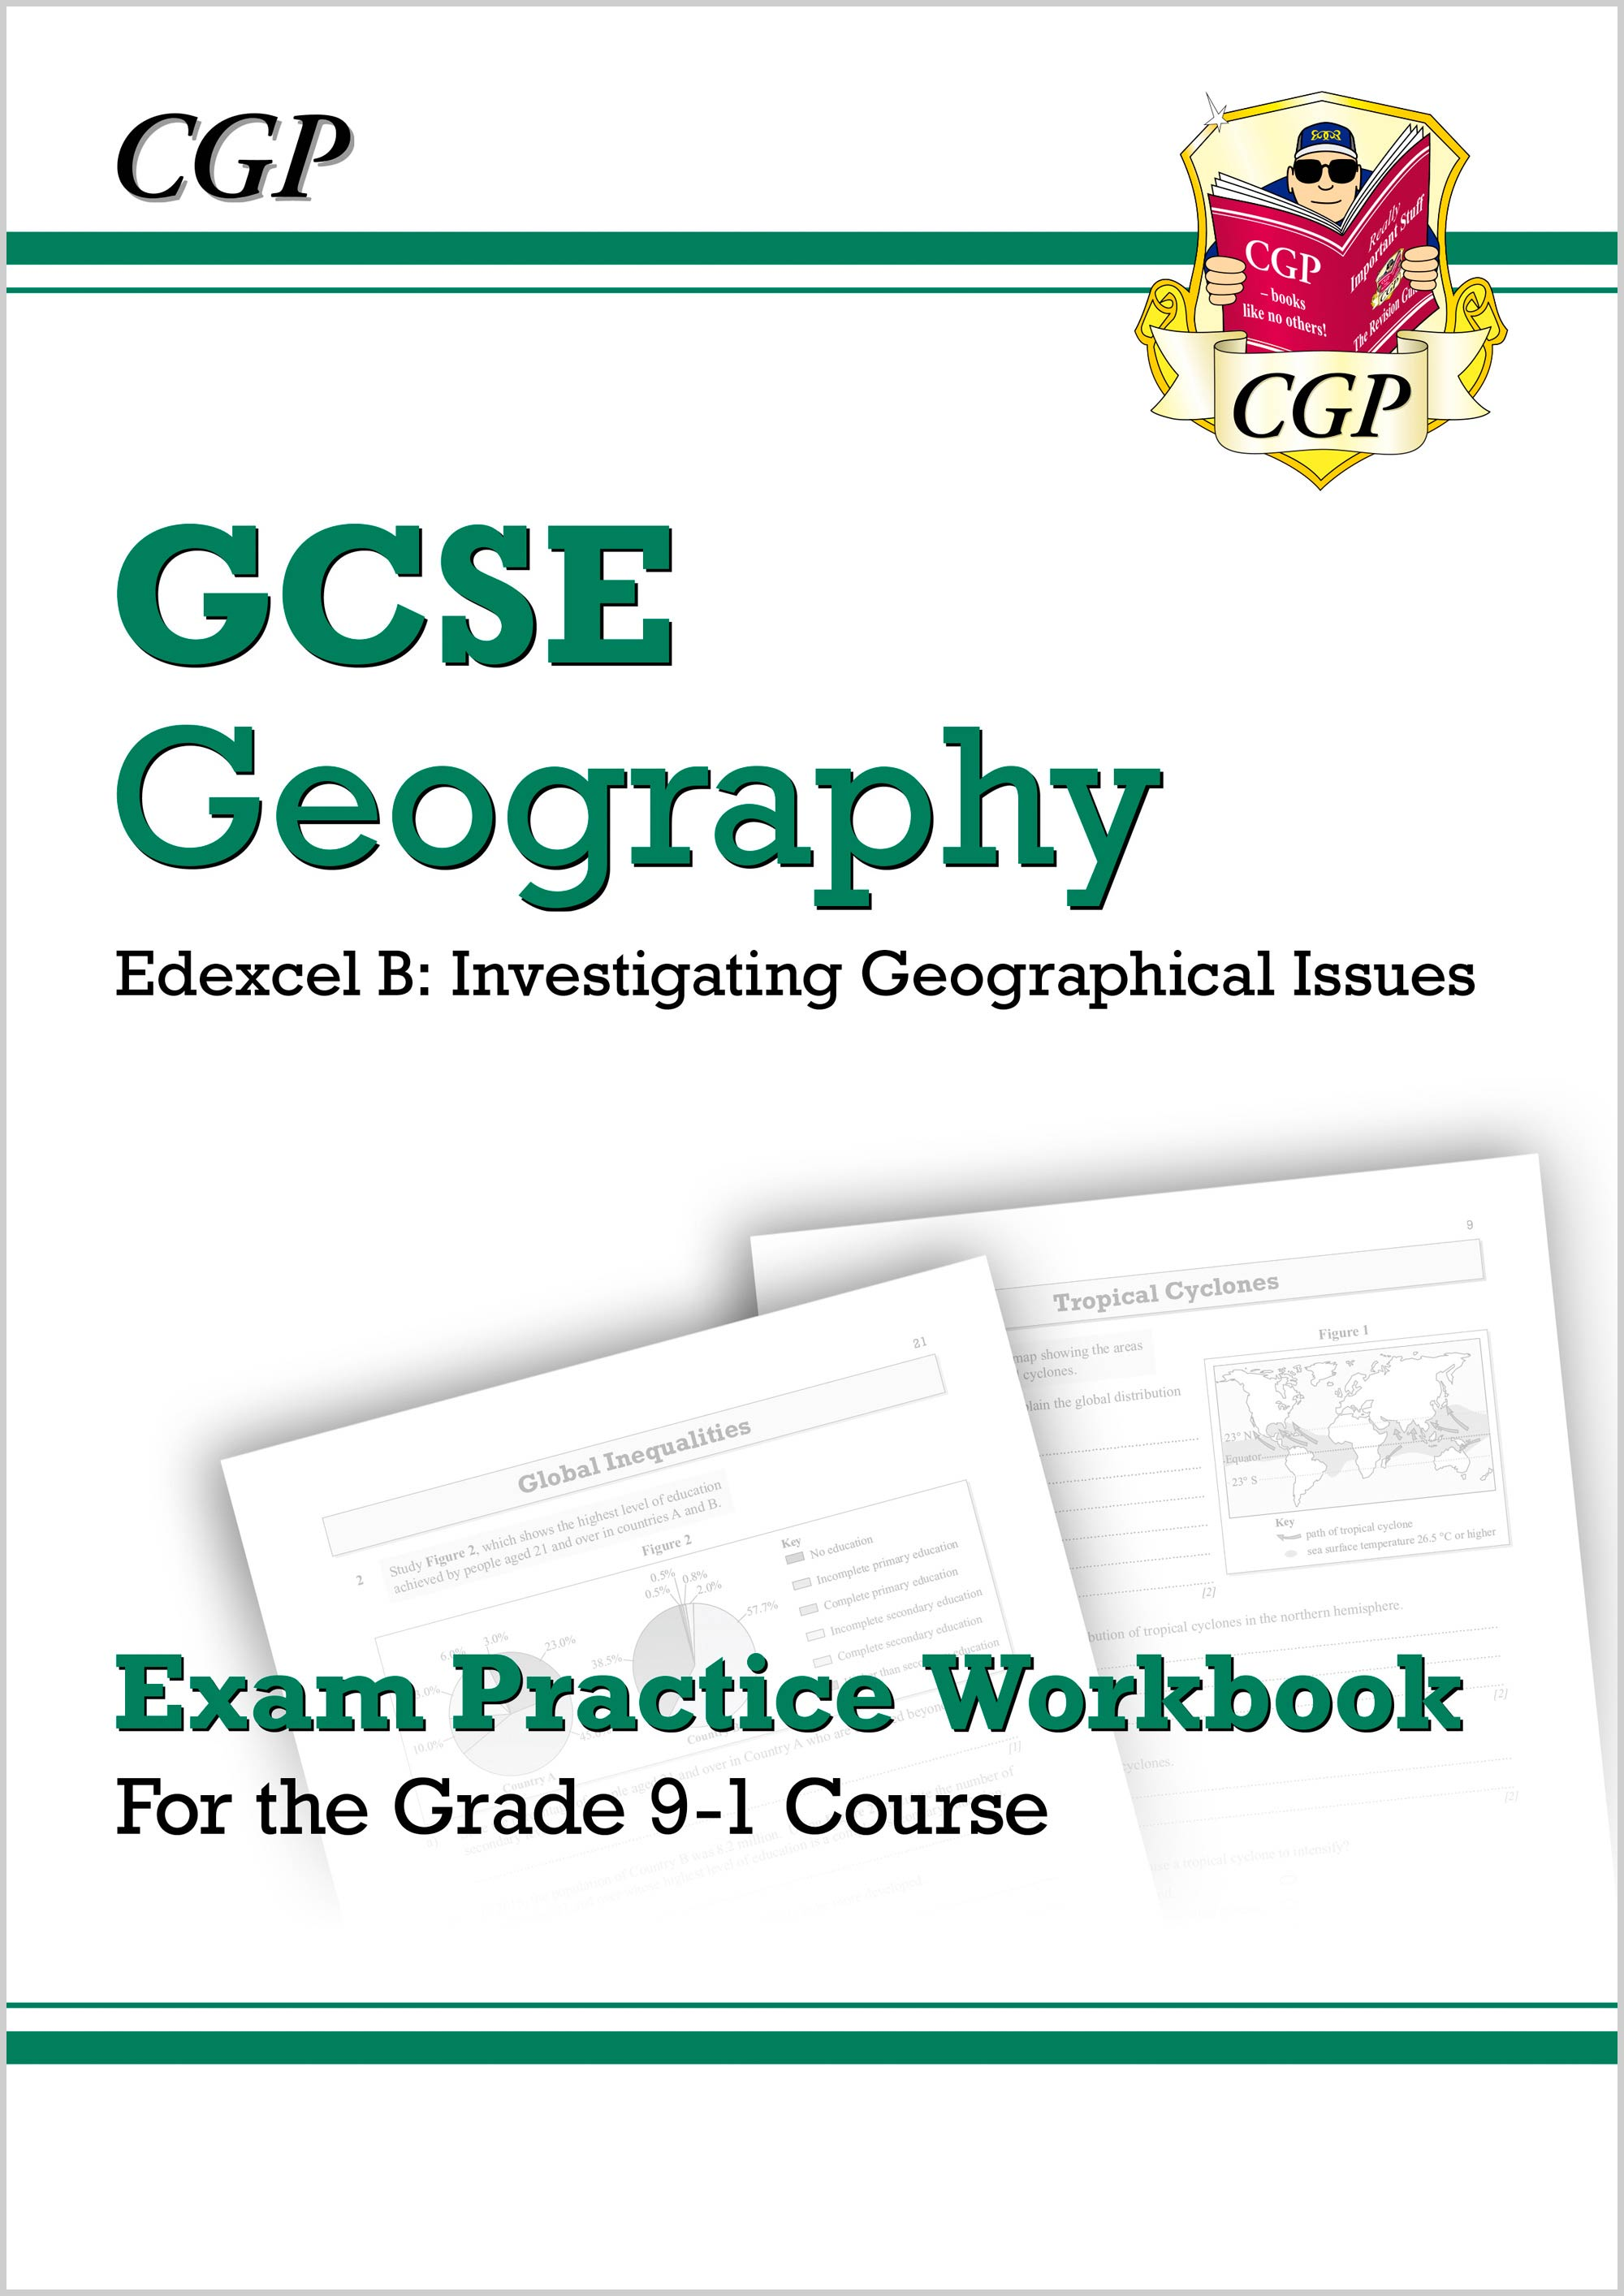 GEQ41DK - New Grade 9-1 GCSE Geography Edexcel B: Investigating Geographical Issues - Exam Practice